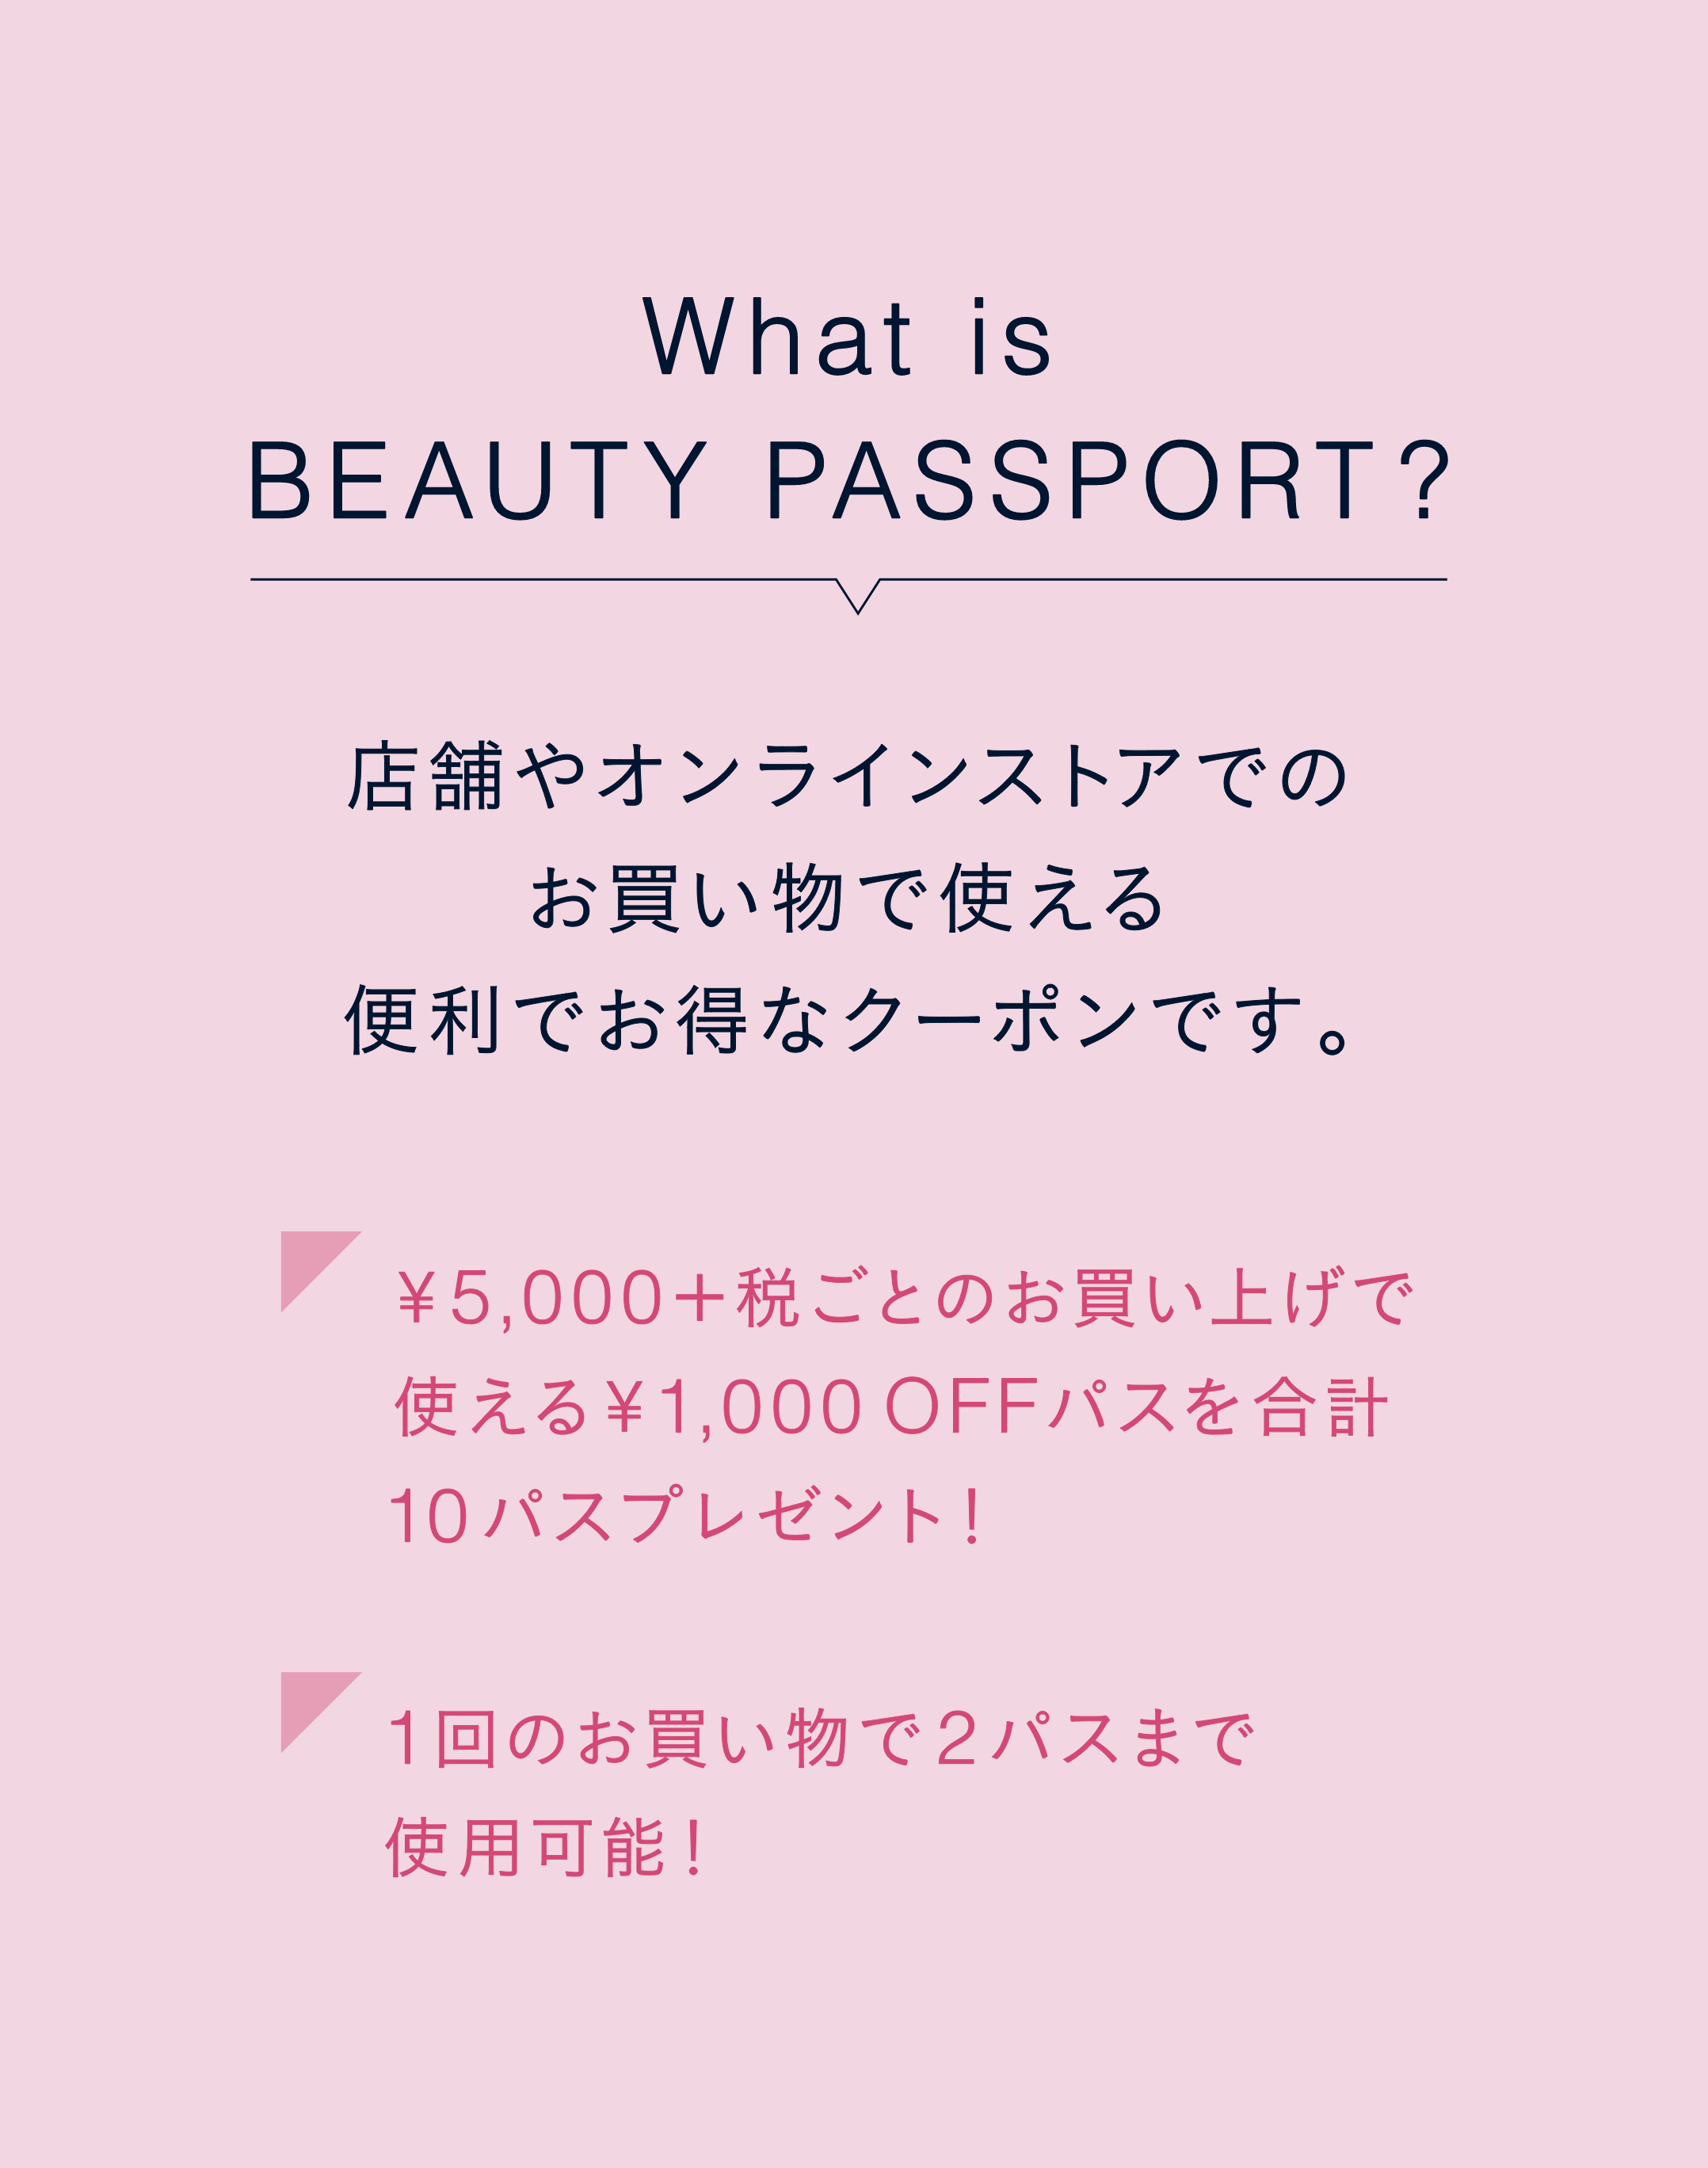 What is BEAUTY PASSPORT?